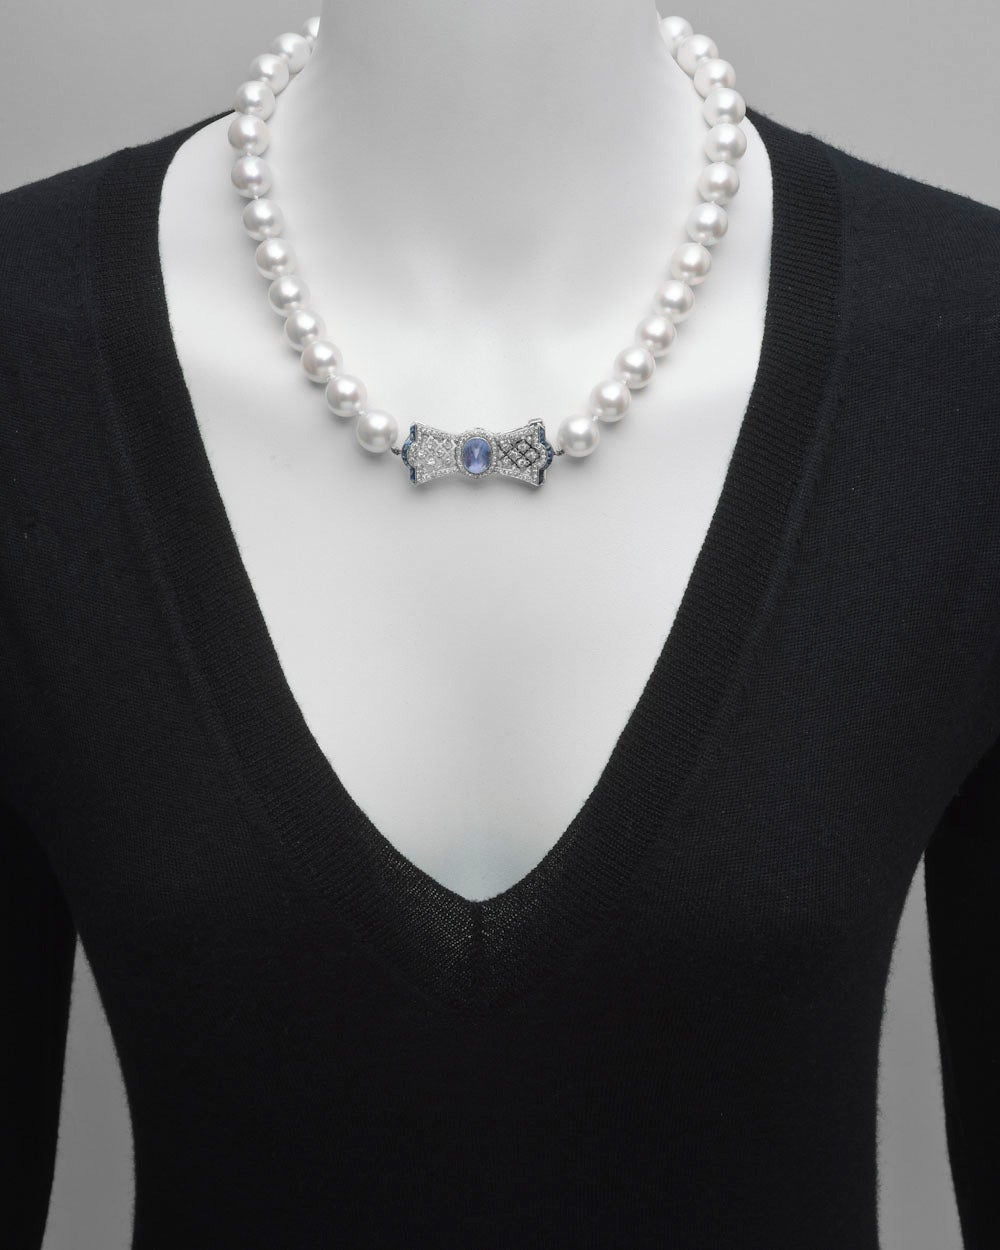 South Sea Pearl Necklace with Gem-Set Bow Clasp 2